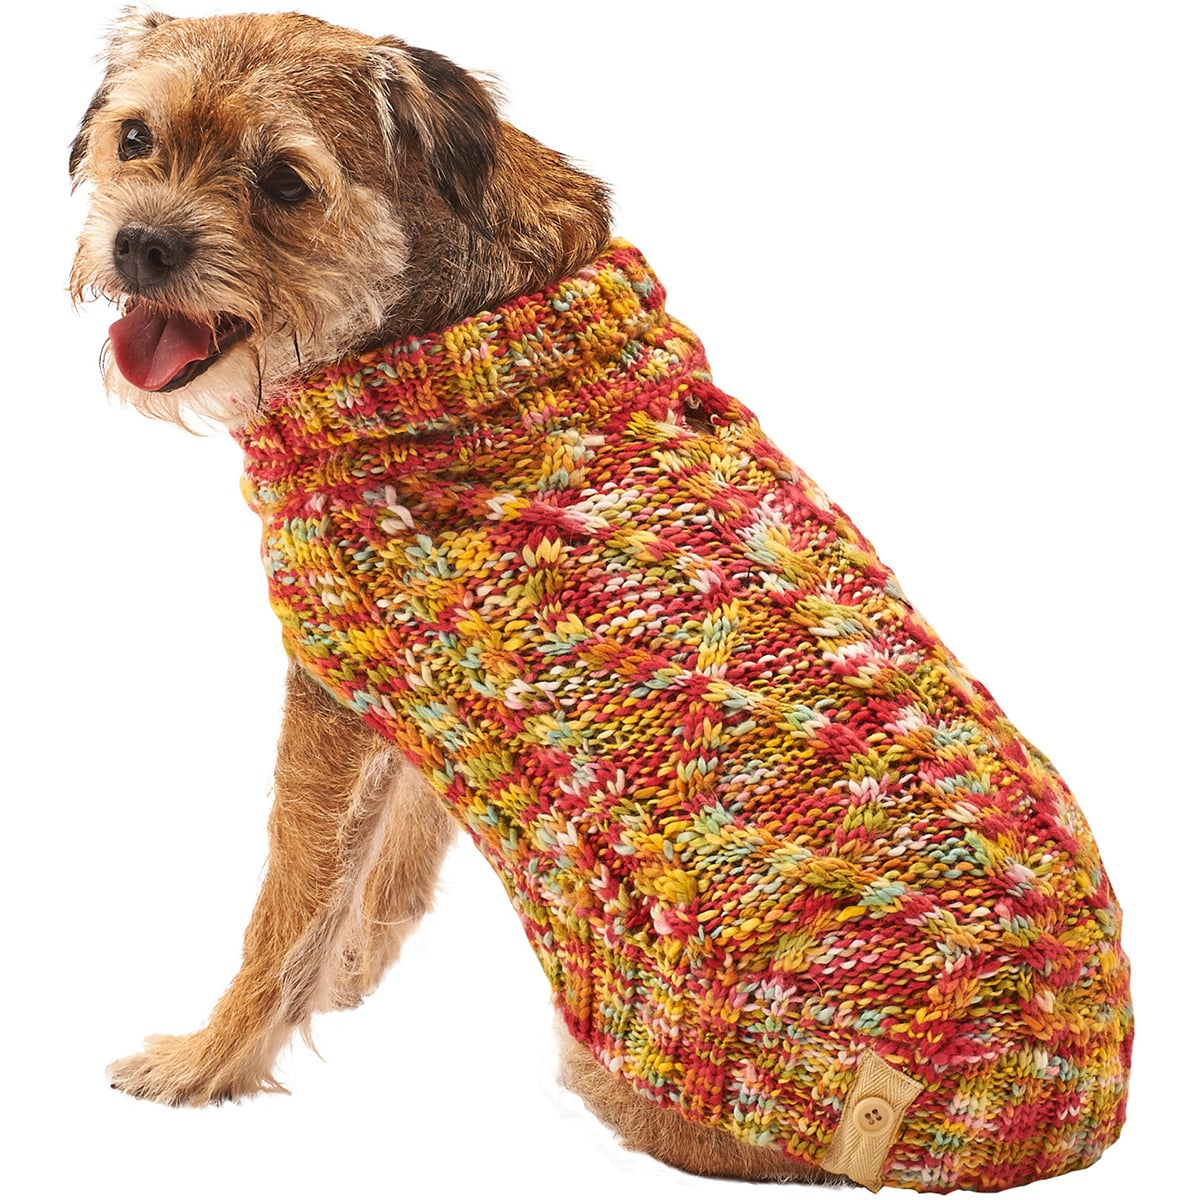 Ethical Pets Dog Multi-Crochet Sweater (Black Small), Size S